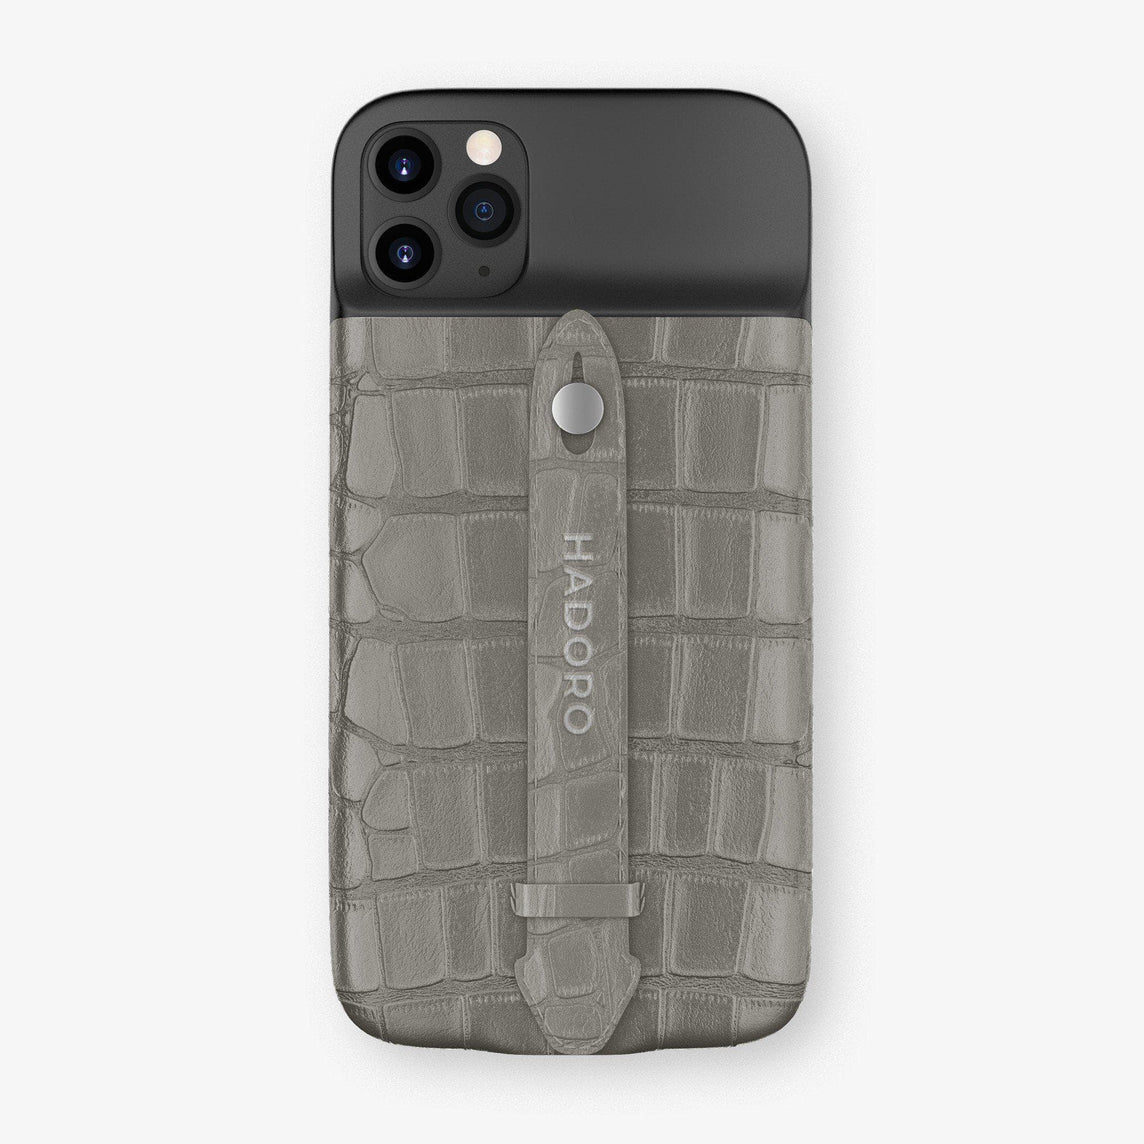 Alligator Battery Finger Case for iPhone 11 Pro | Grey/Grey - Stainless Steel